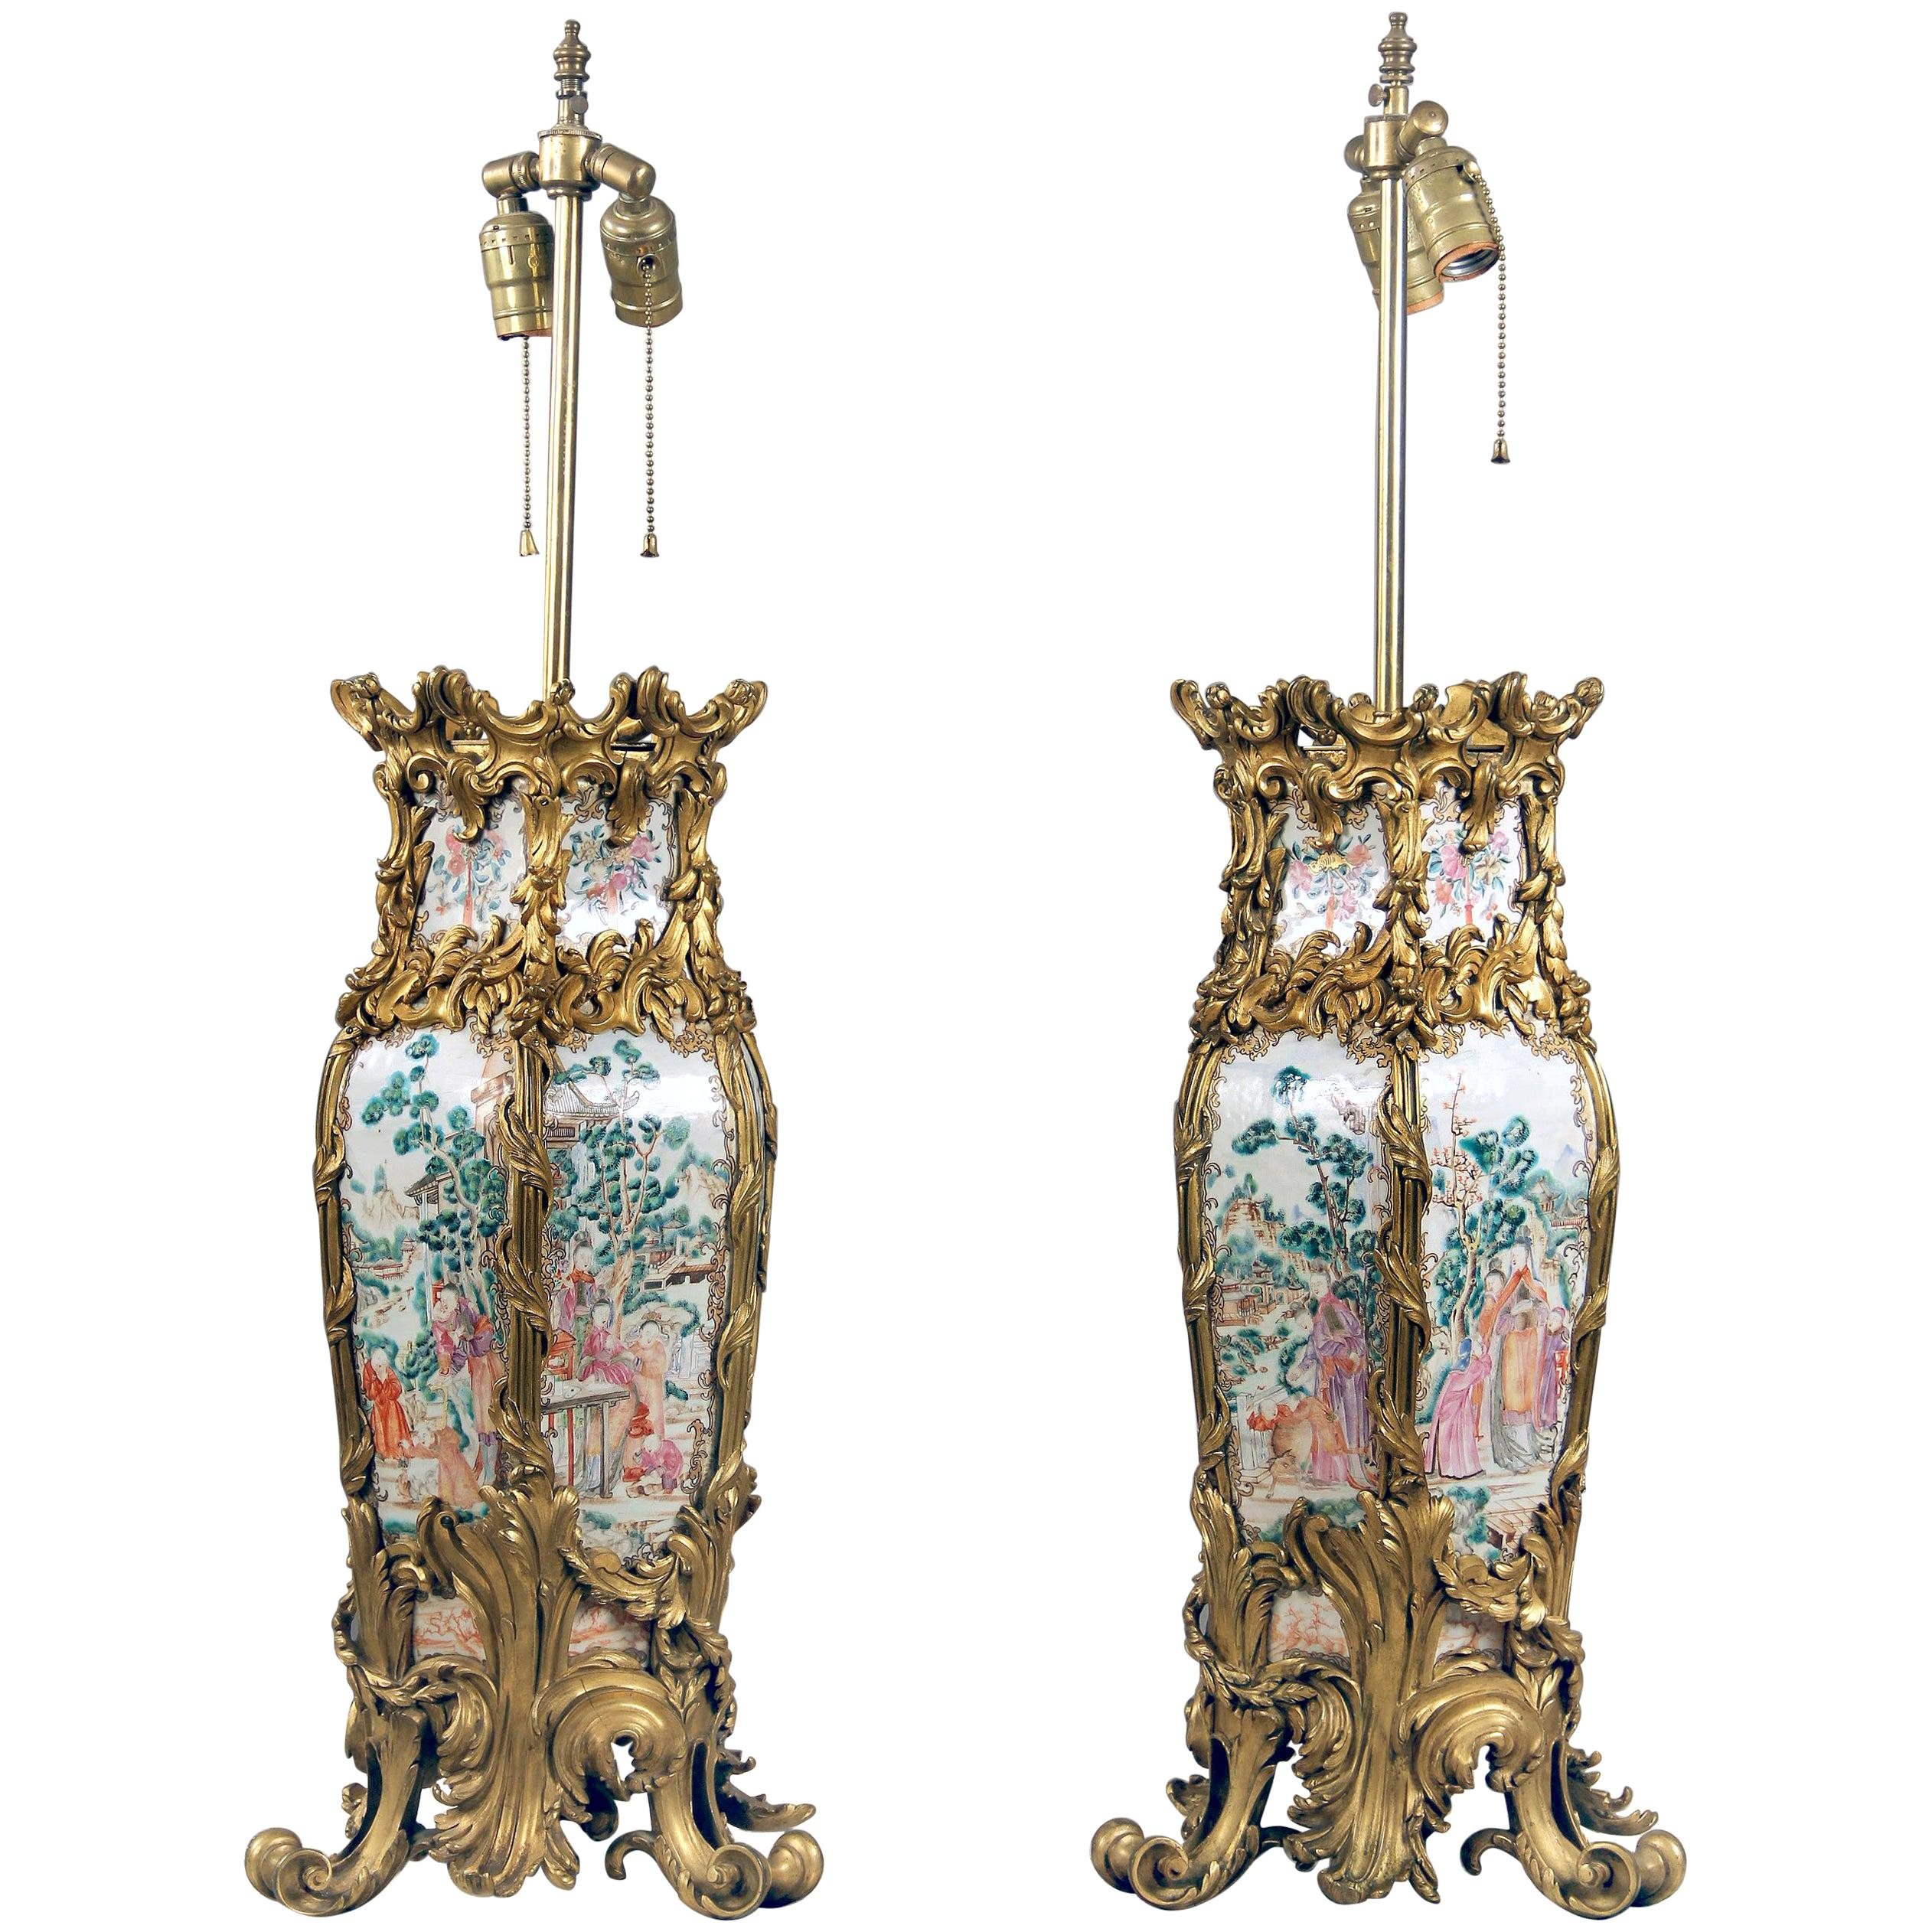 Pair of Late 19th Century French Gilt Bronze Mounted Chinese Porcelain Lamps